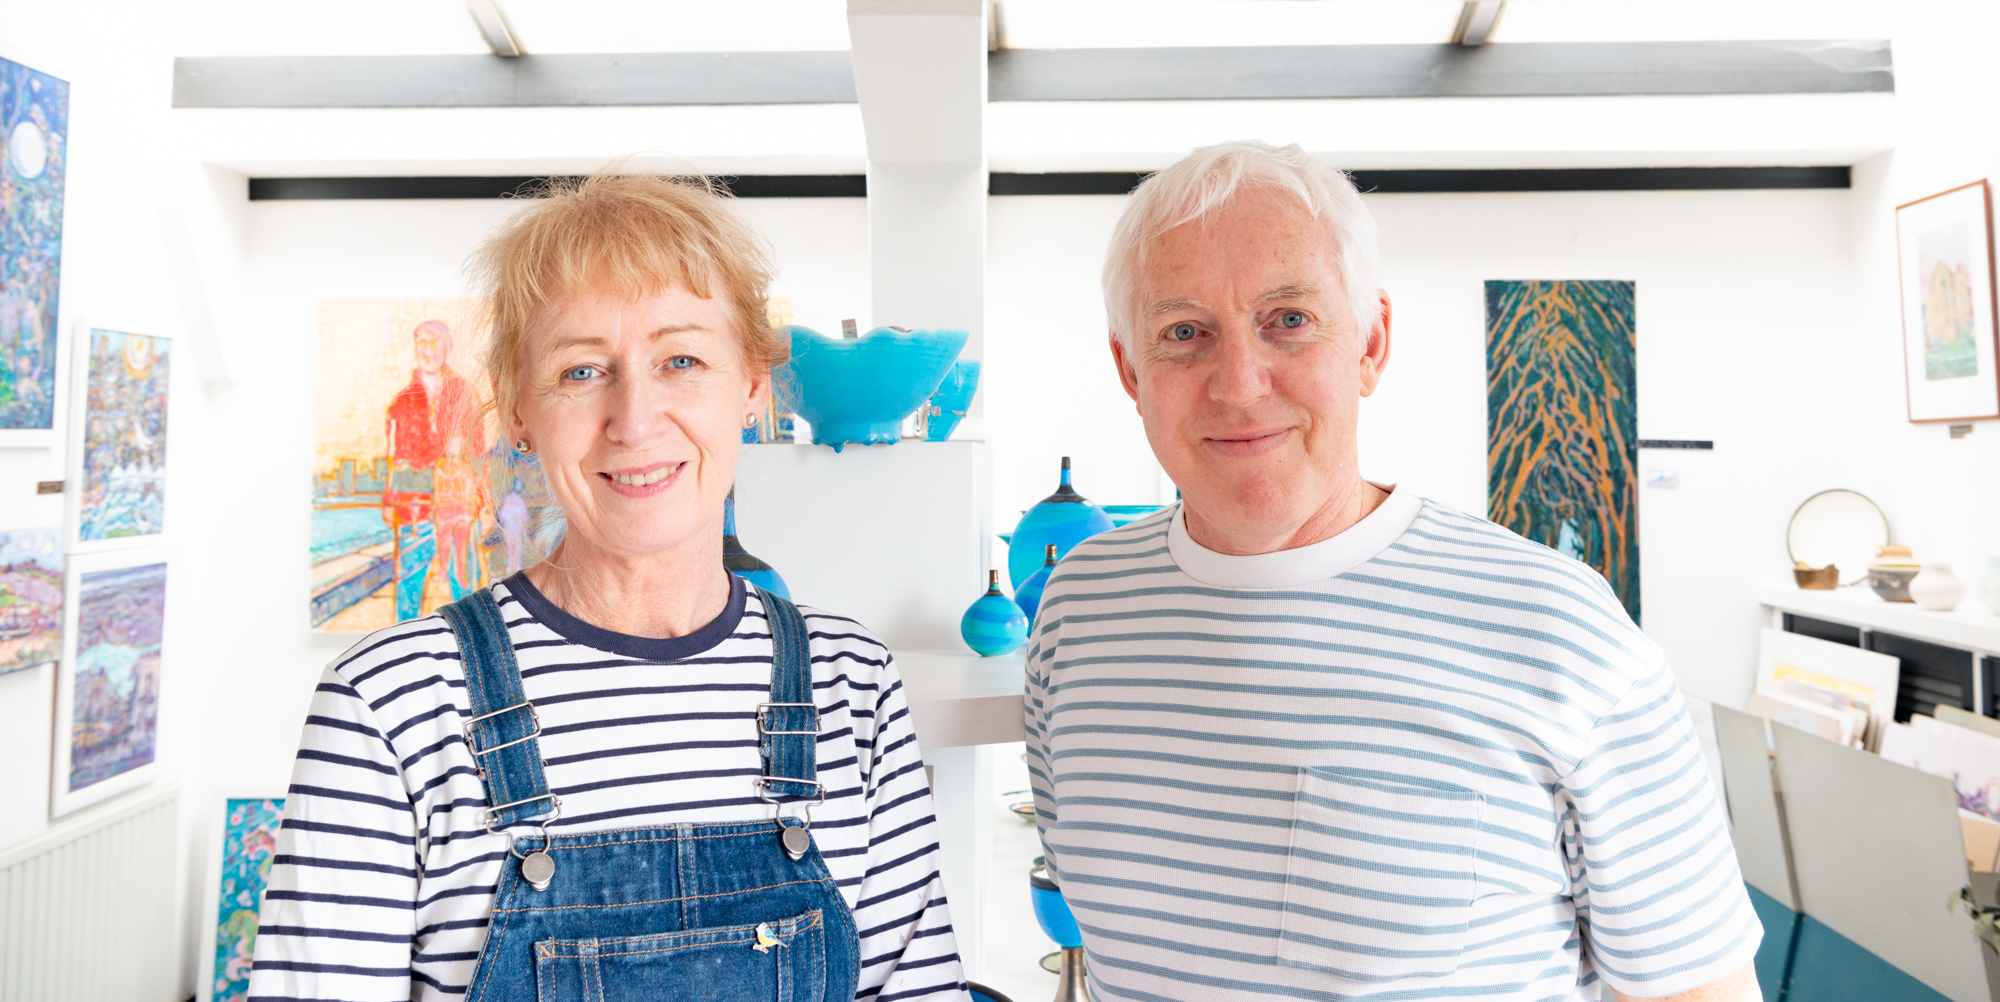 Julie O'Sullivan and Richard Baxter, ceramicists at Old Leigh Studios